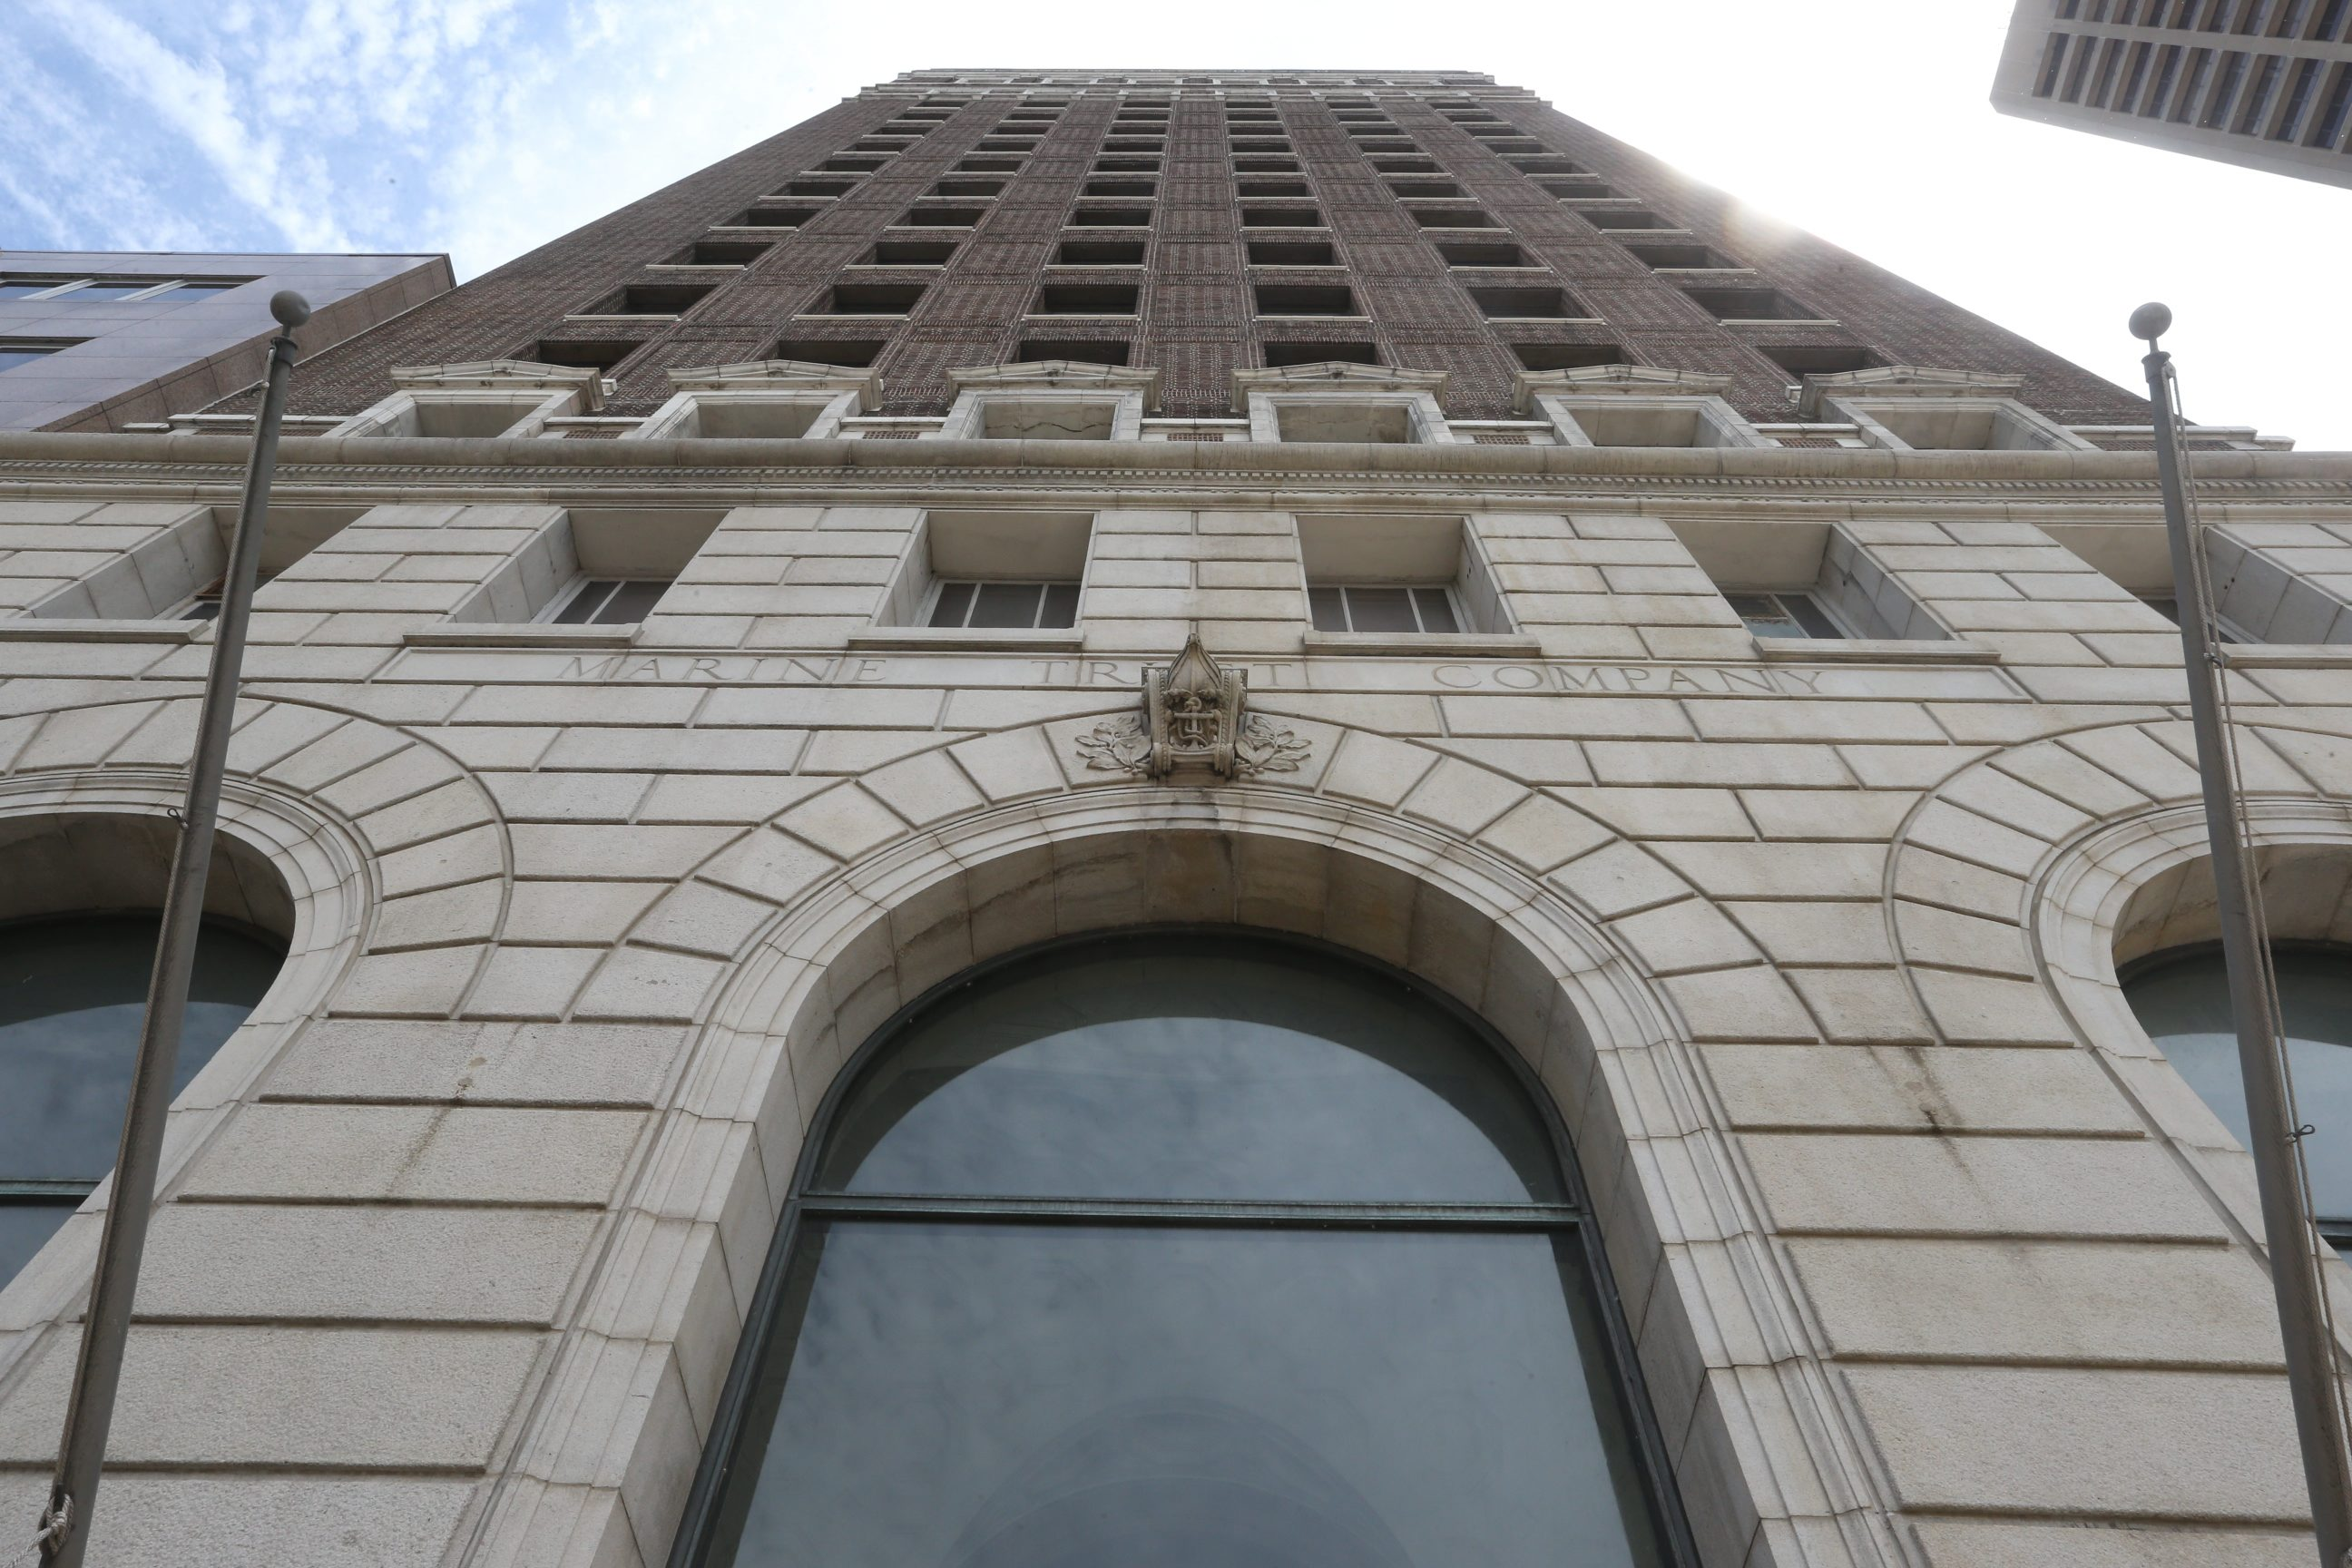 The former Marine Trust Building on Main Street will be redeveloped as The Marin. (John Hickey/Buffalo News file photo)